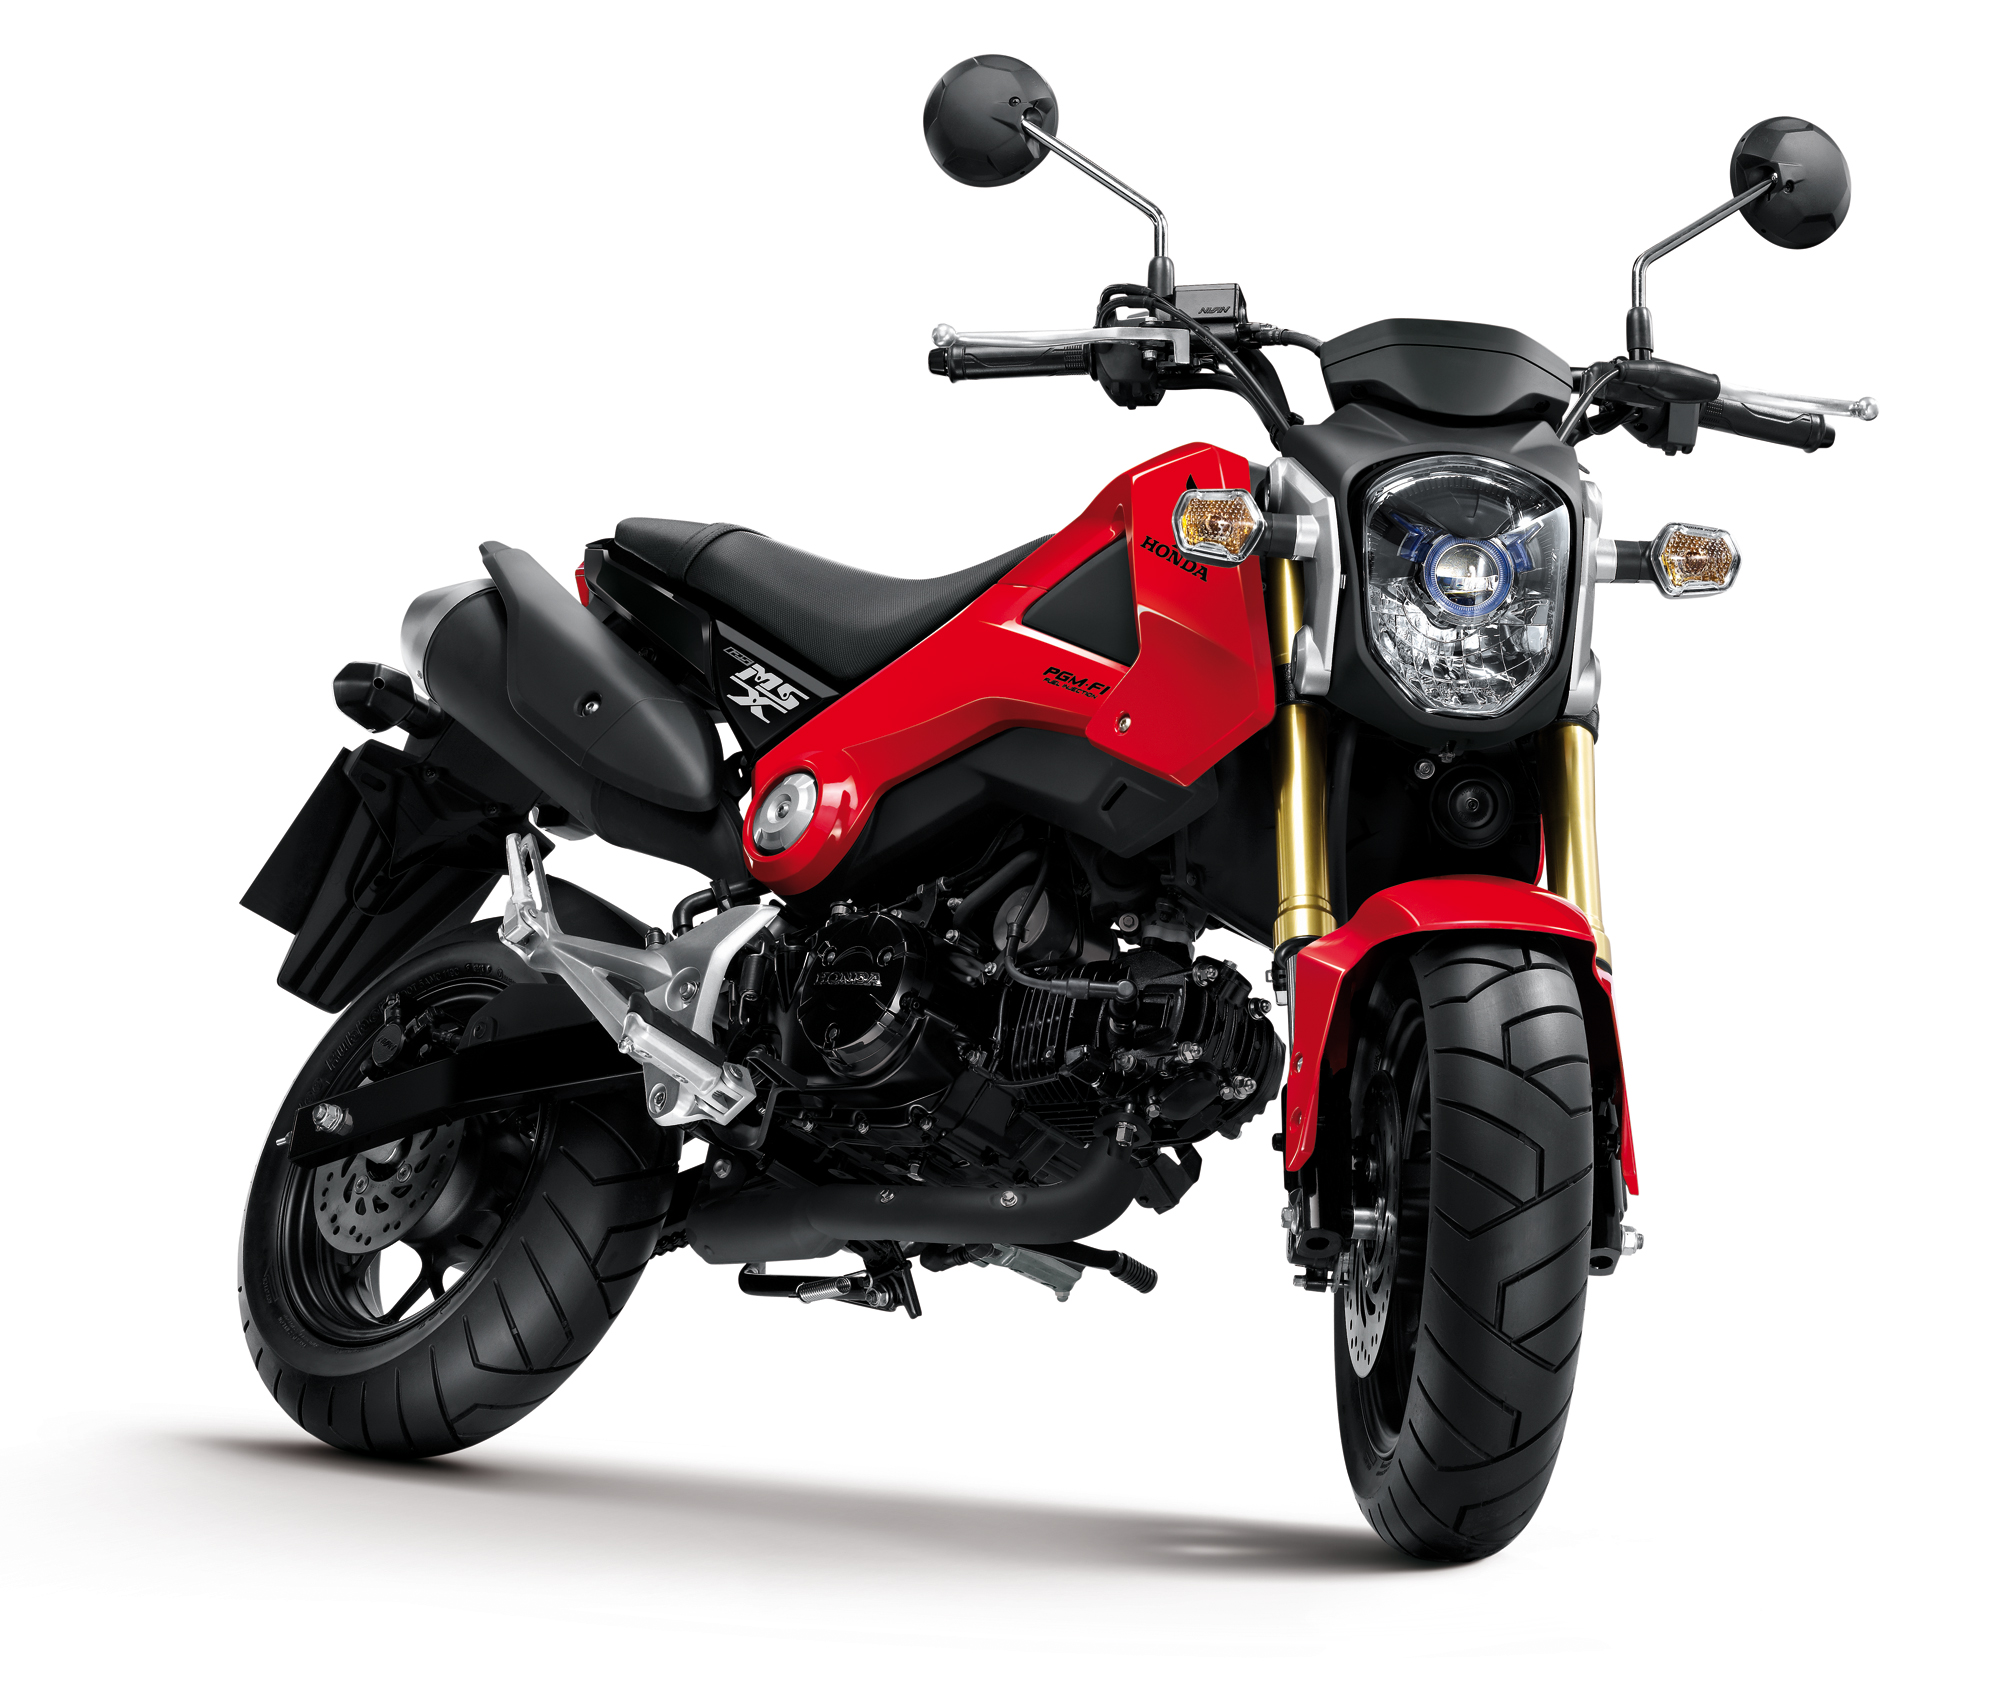 Surprise new mini-bike from Honda